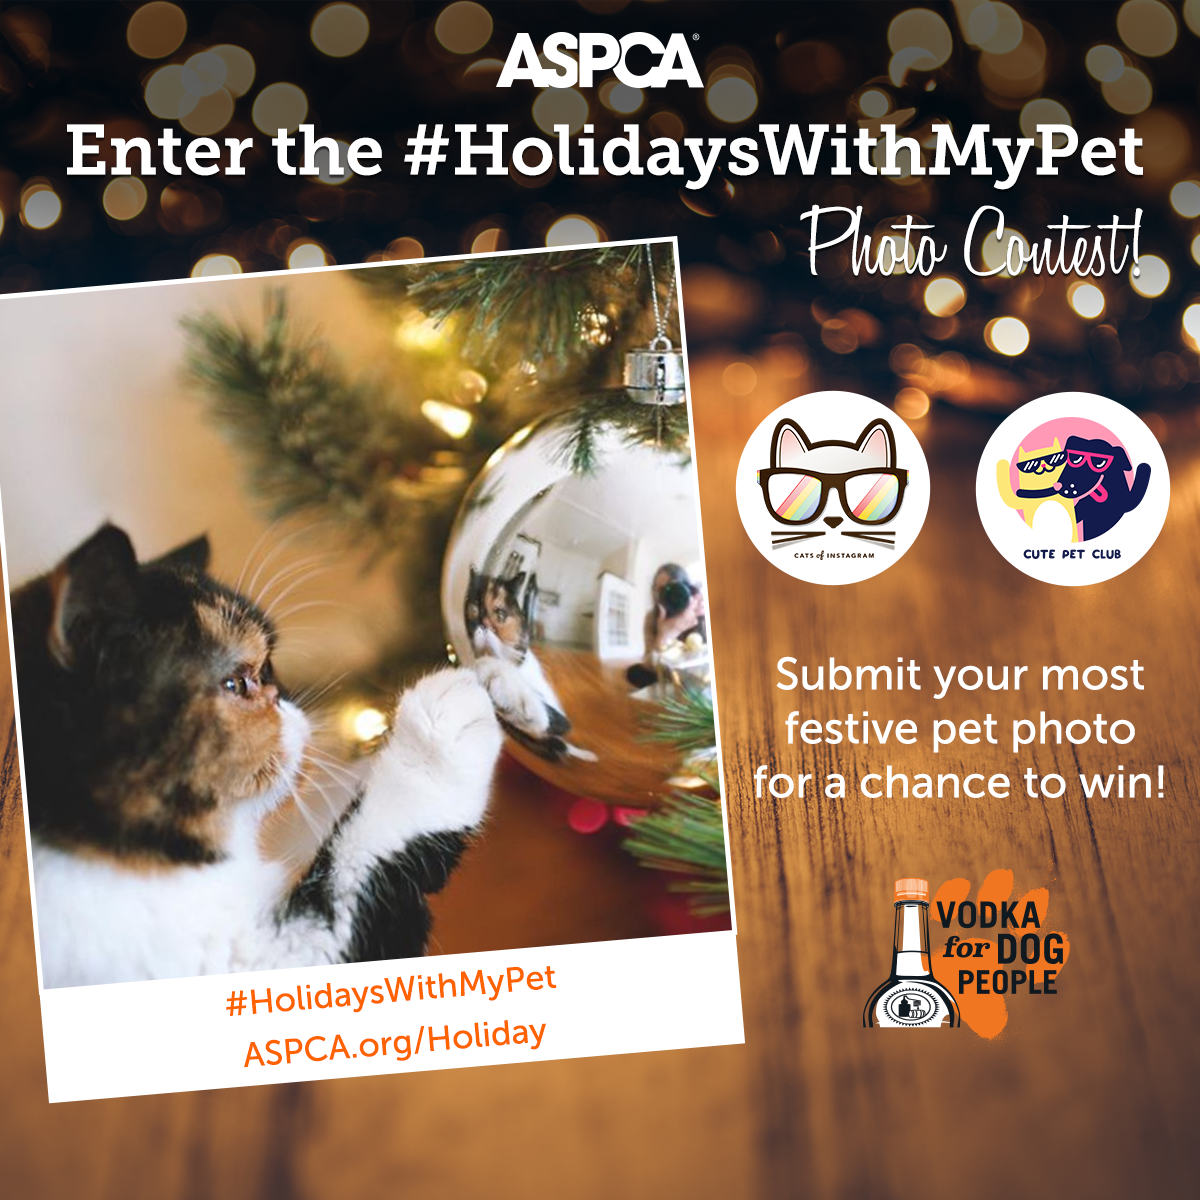 Speedy the cheeky house bunny speedys christmas and holiday and i just found out that the aspca with cats of instagram and cute pet club are holding this fun photo competion m4hsunfo